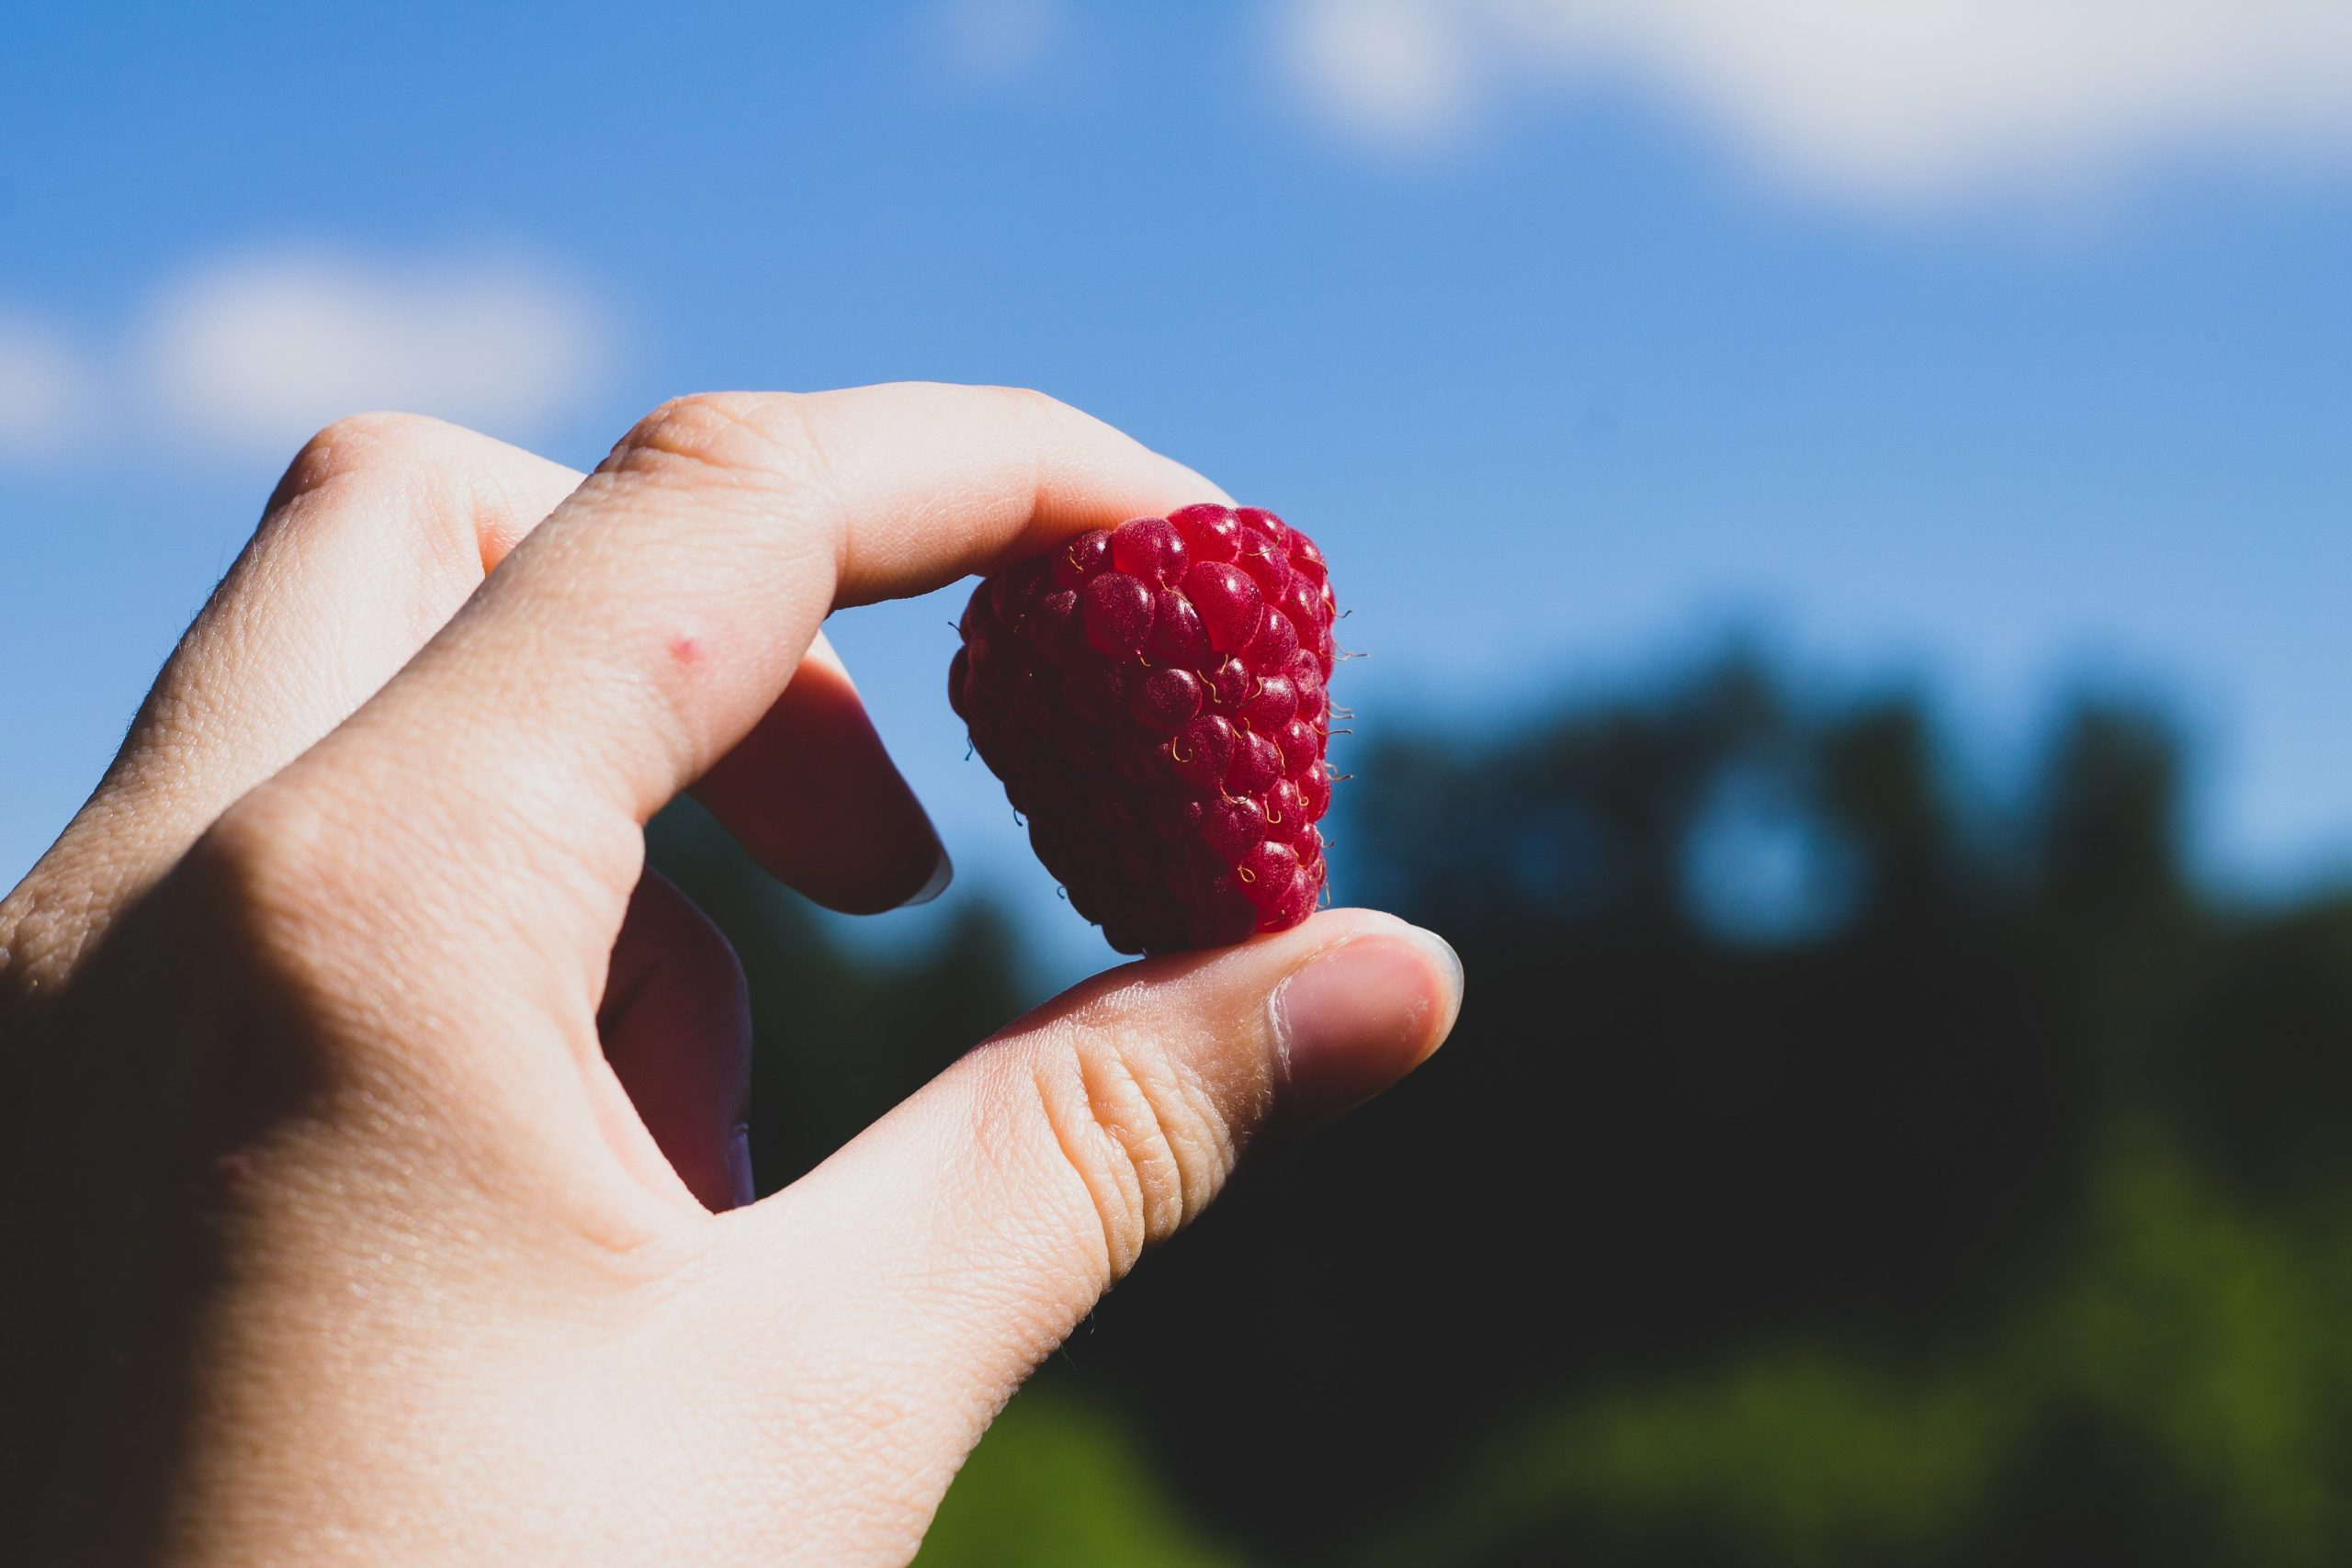 hand holding a red raspberry against a blue sky